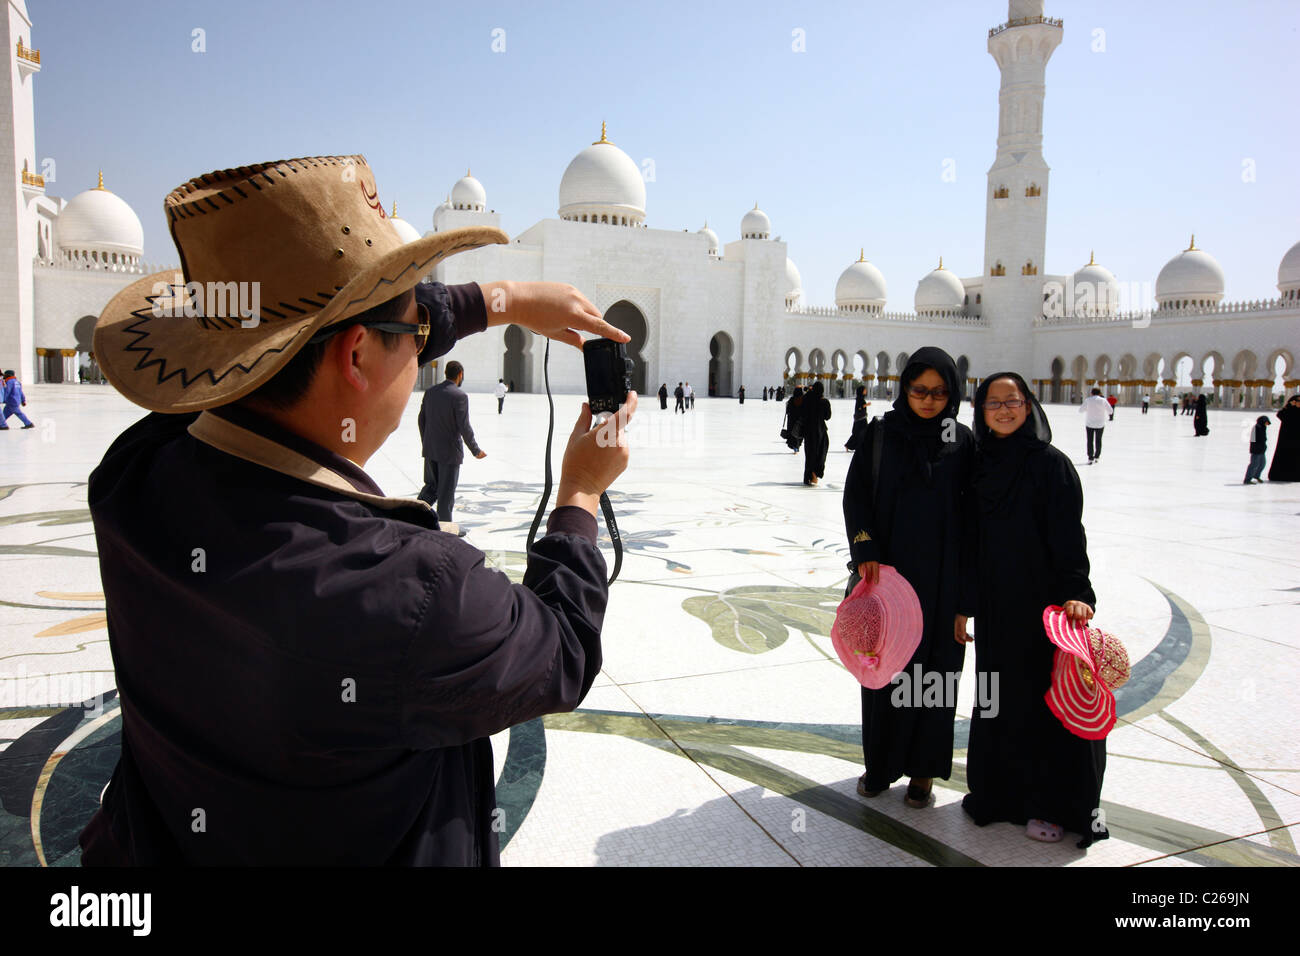 Sheikh Zayed Mosque, Abu Dhabi. Third biggest mosque in the world. Space for 10000 believers indoors and 30000 outdoors. Stock Photo